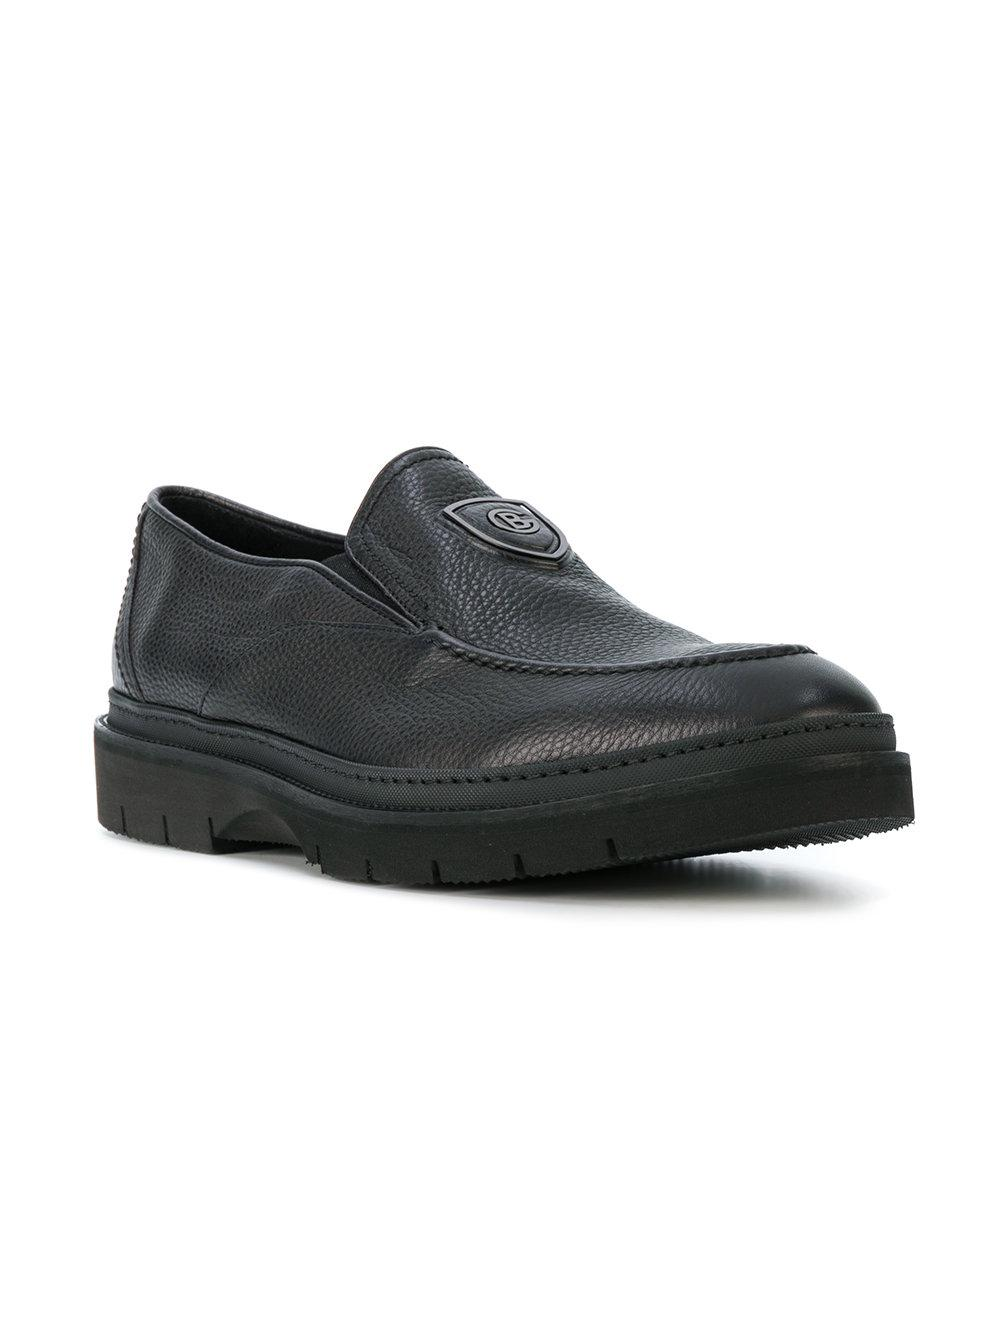 BALDININITextured loafers ZcEtBiI